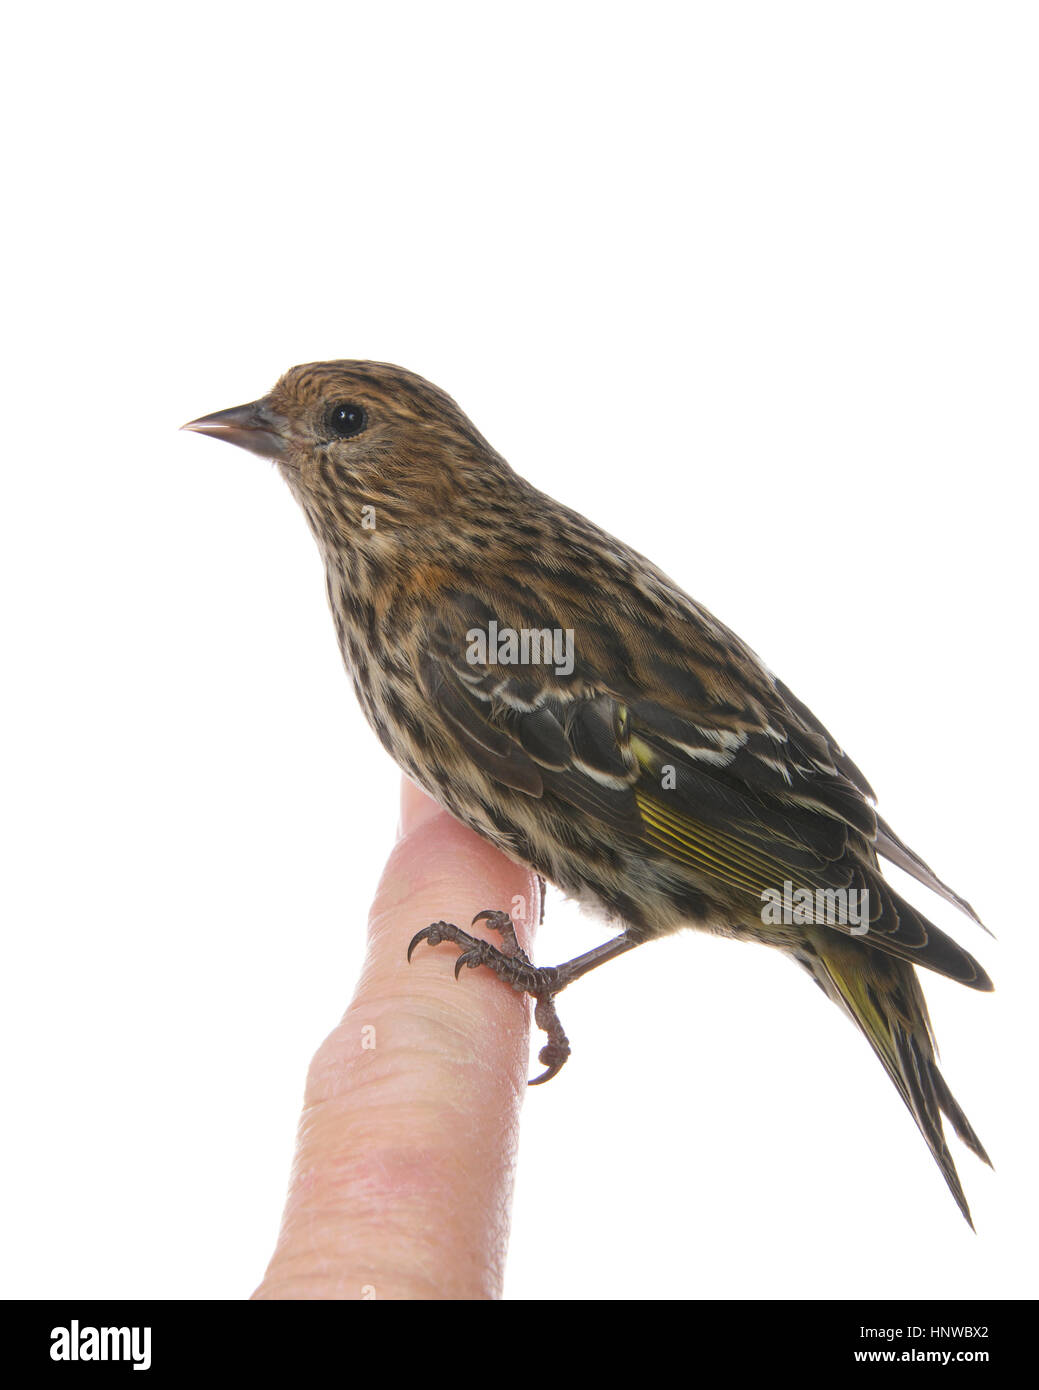 The pine siskin, Spinus pinus, a North American bird in the finch family perched on human finger isolated on white, - Stock Image